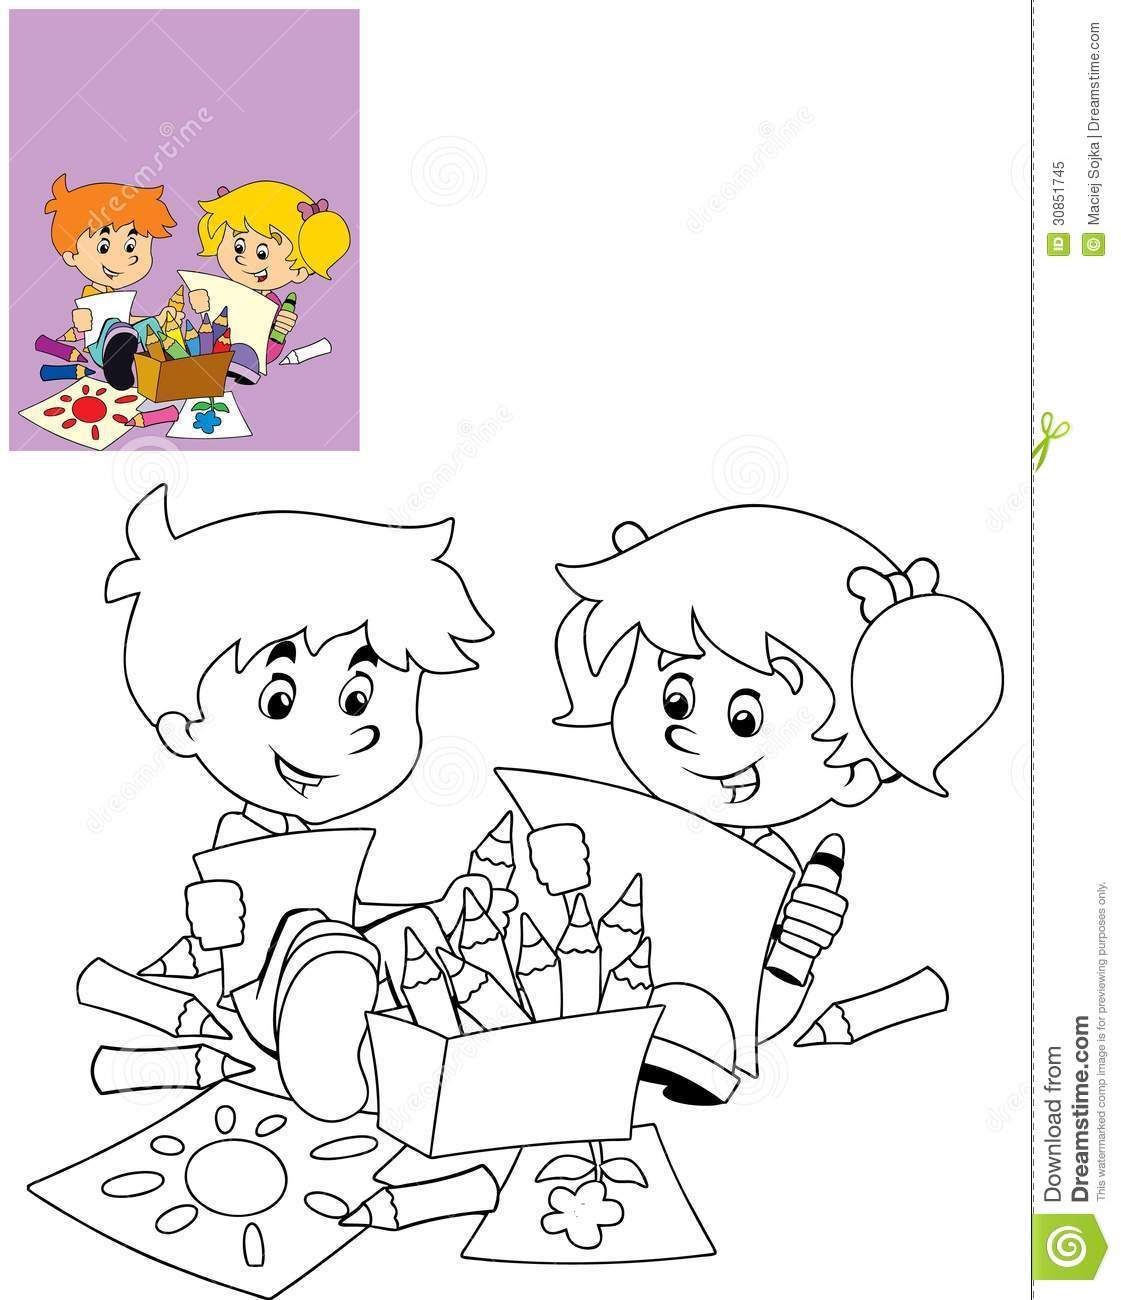 Coloring Book Illustrations Of Children Playing